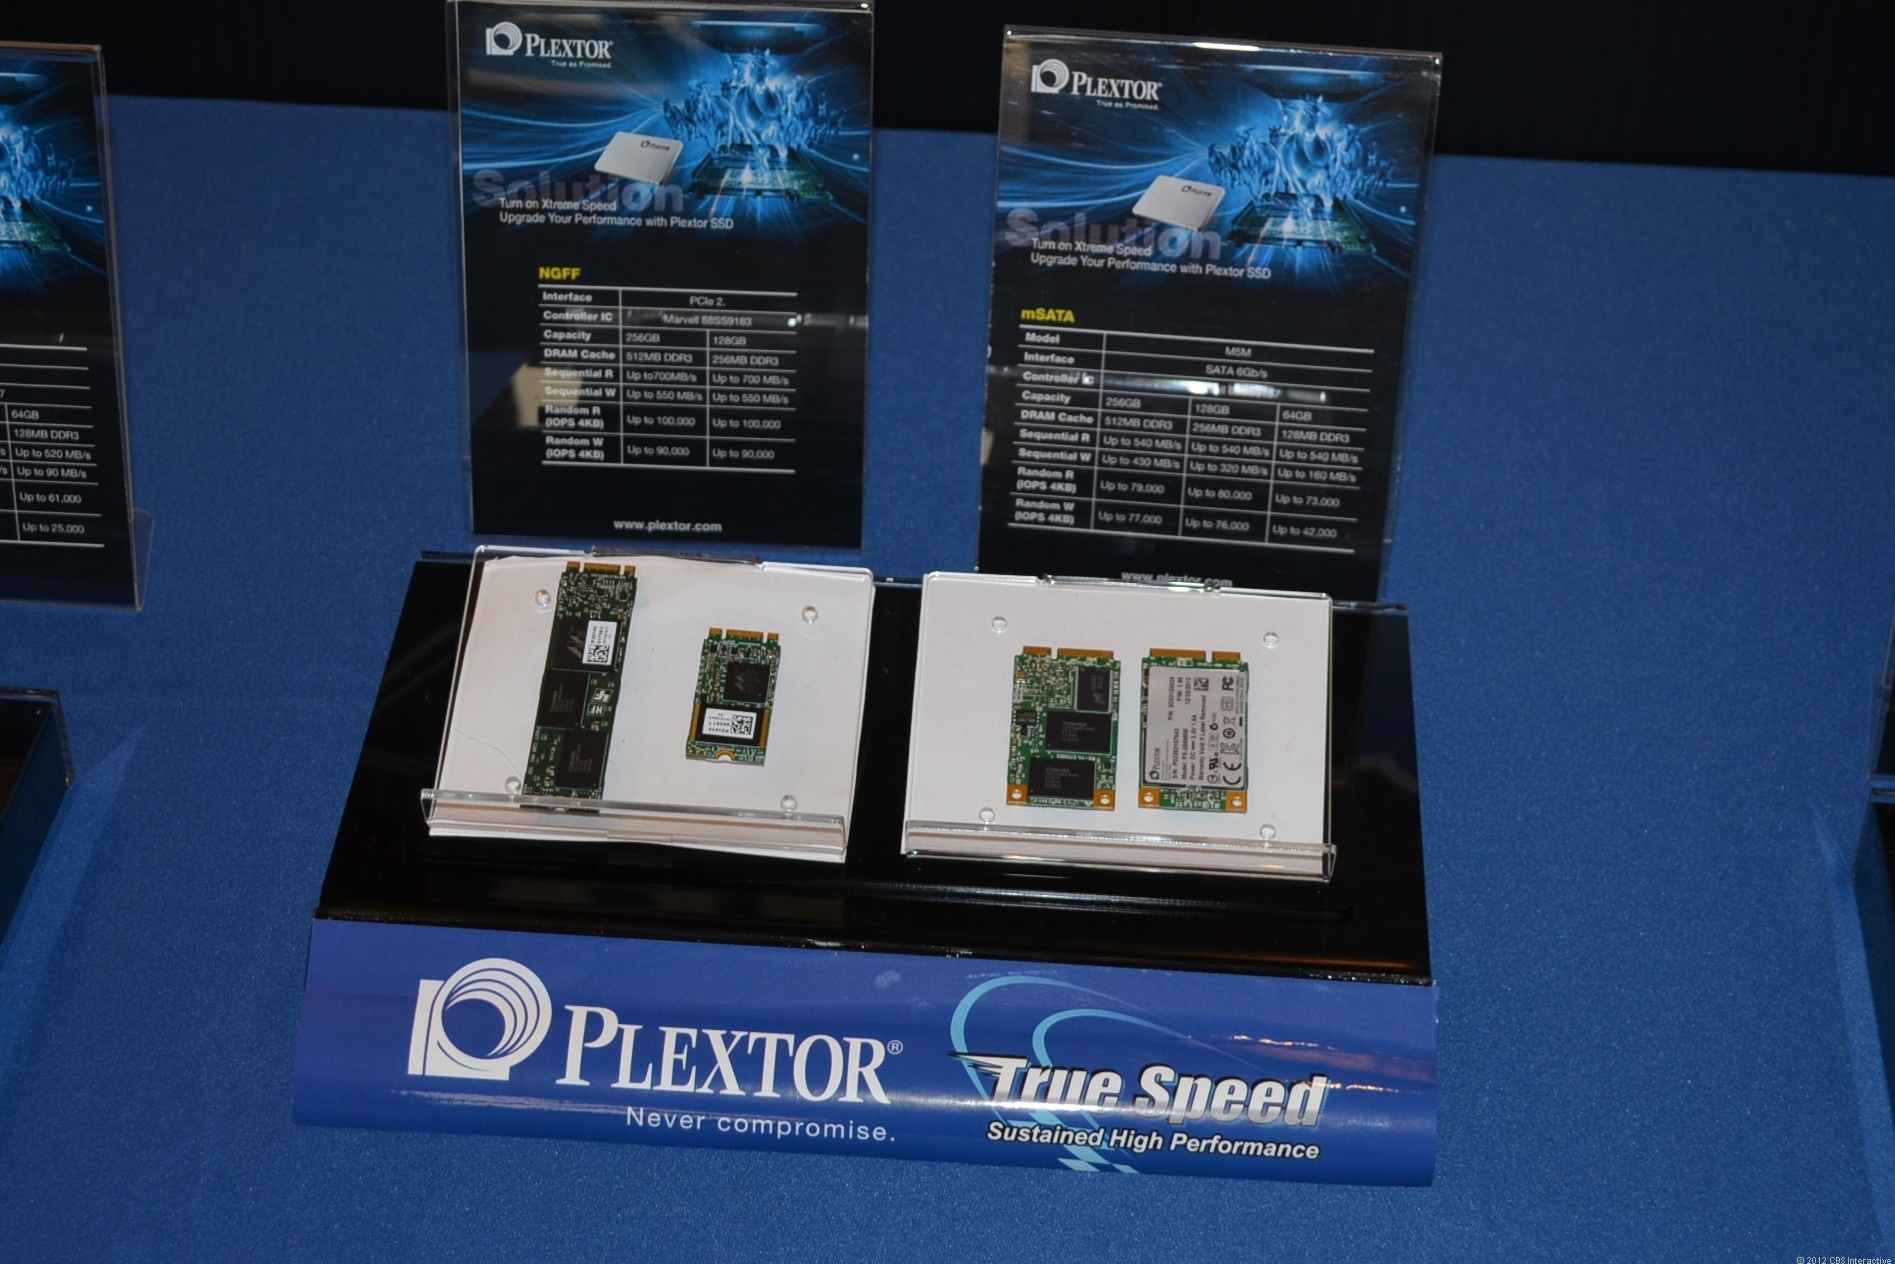 The new M5M mSATA SSDs from Plextor.